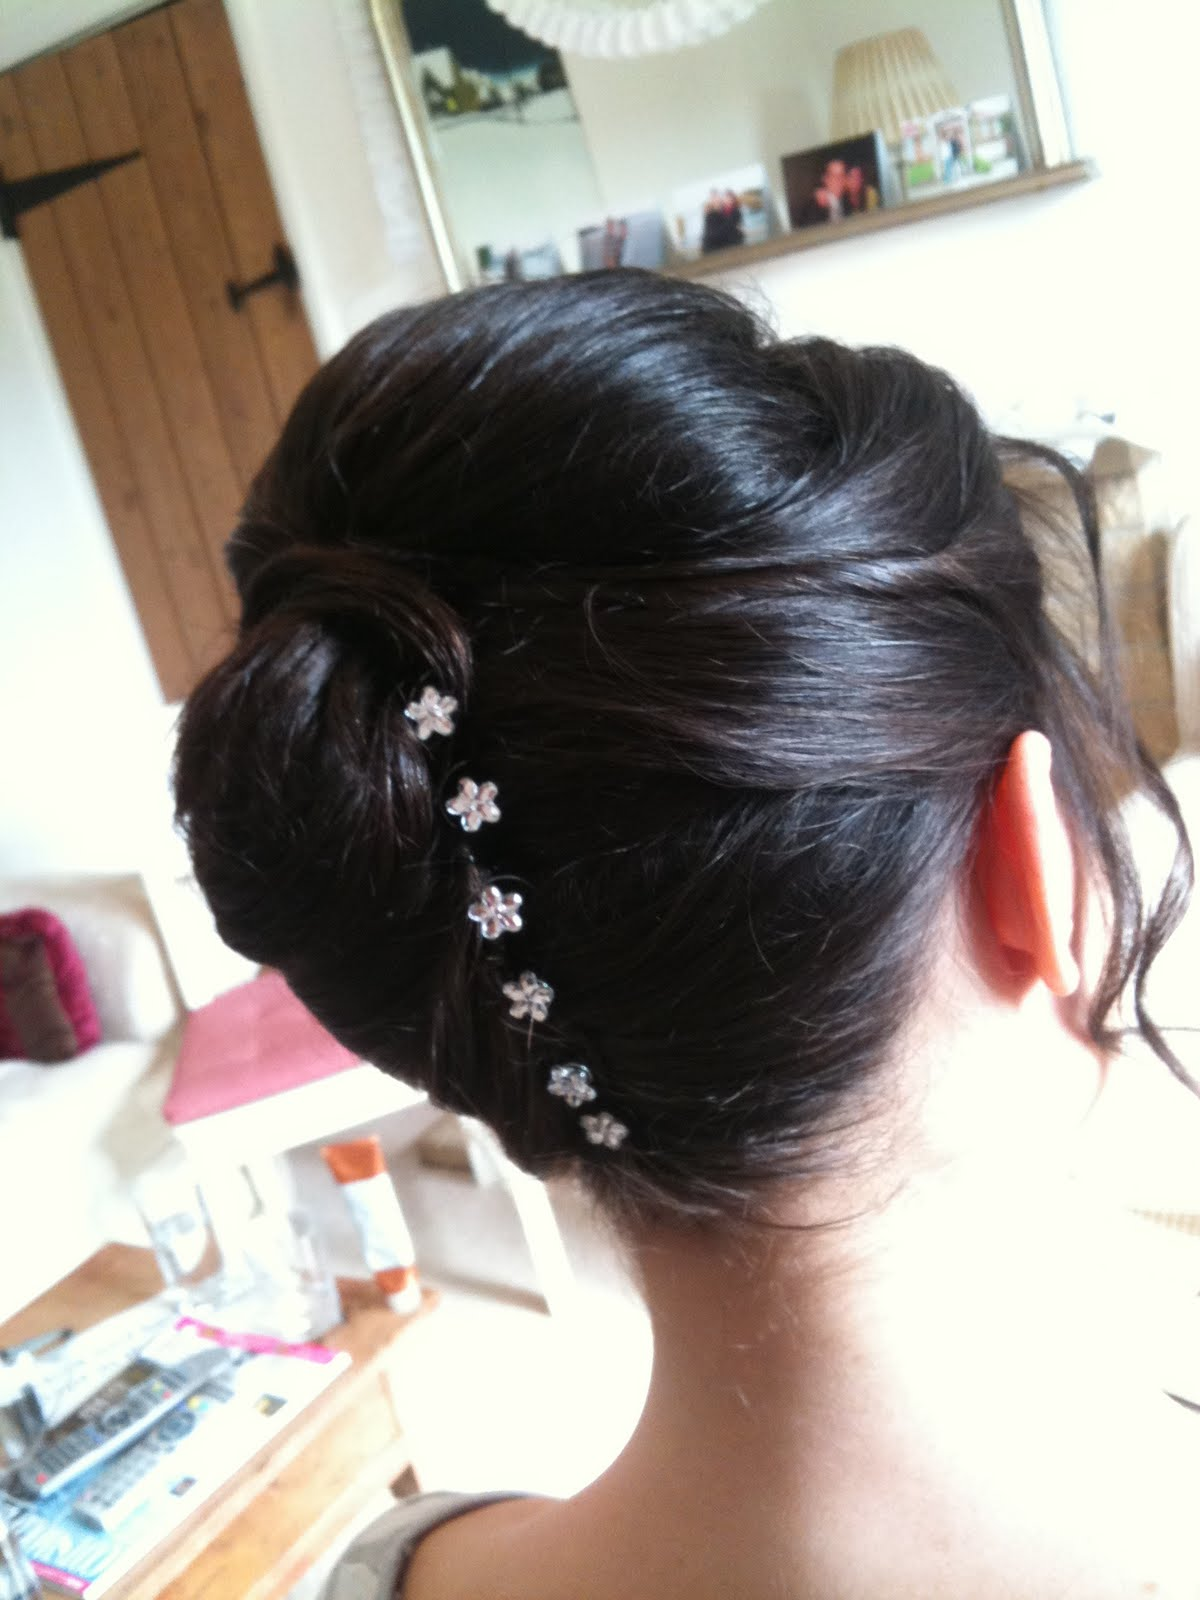 Prom Hairstyles For Medium Hair Half Up Half Down Saturday, 12 March 2011